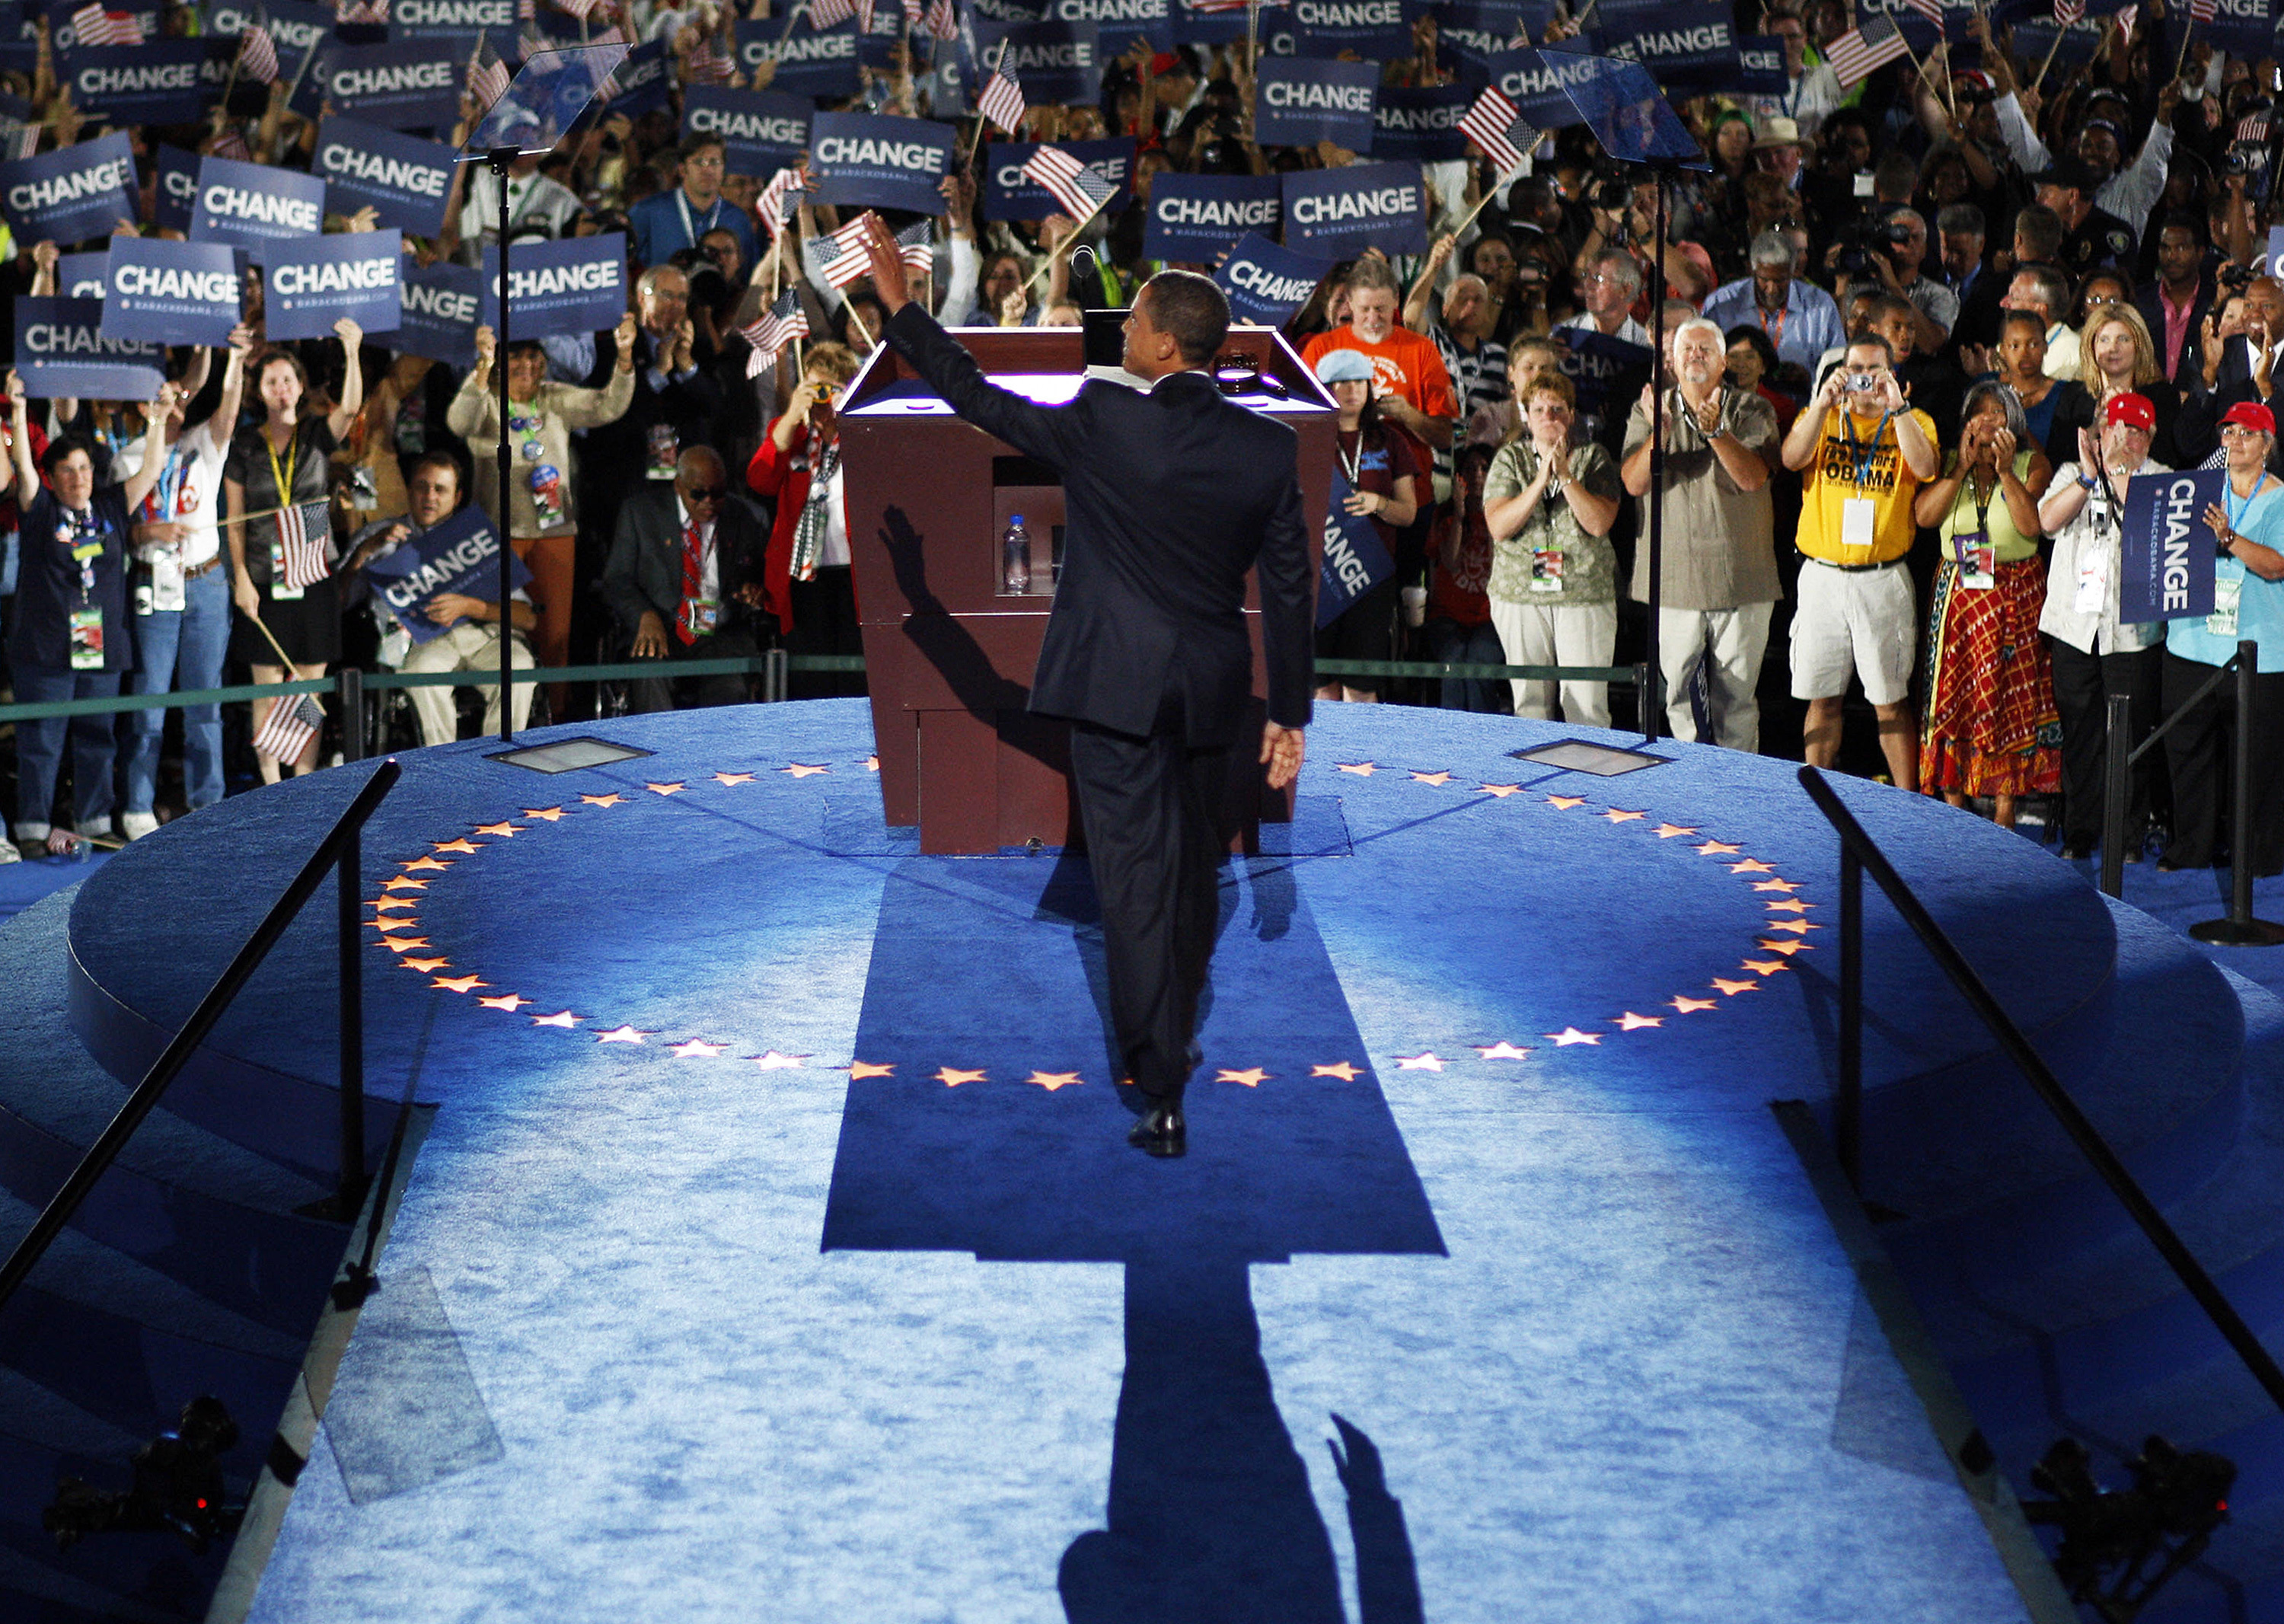 Barack Obama accepts the Democratic presidential nomination at the 2008 Democratic National Convention on Aug. 28, 2008, in Denver. (Photo by Chuck Kennedy/AFP/Getty Images)